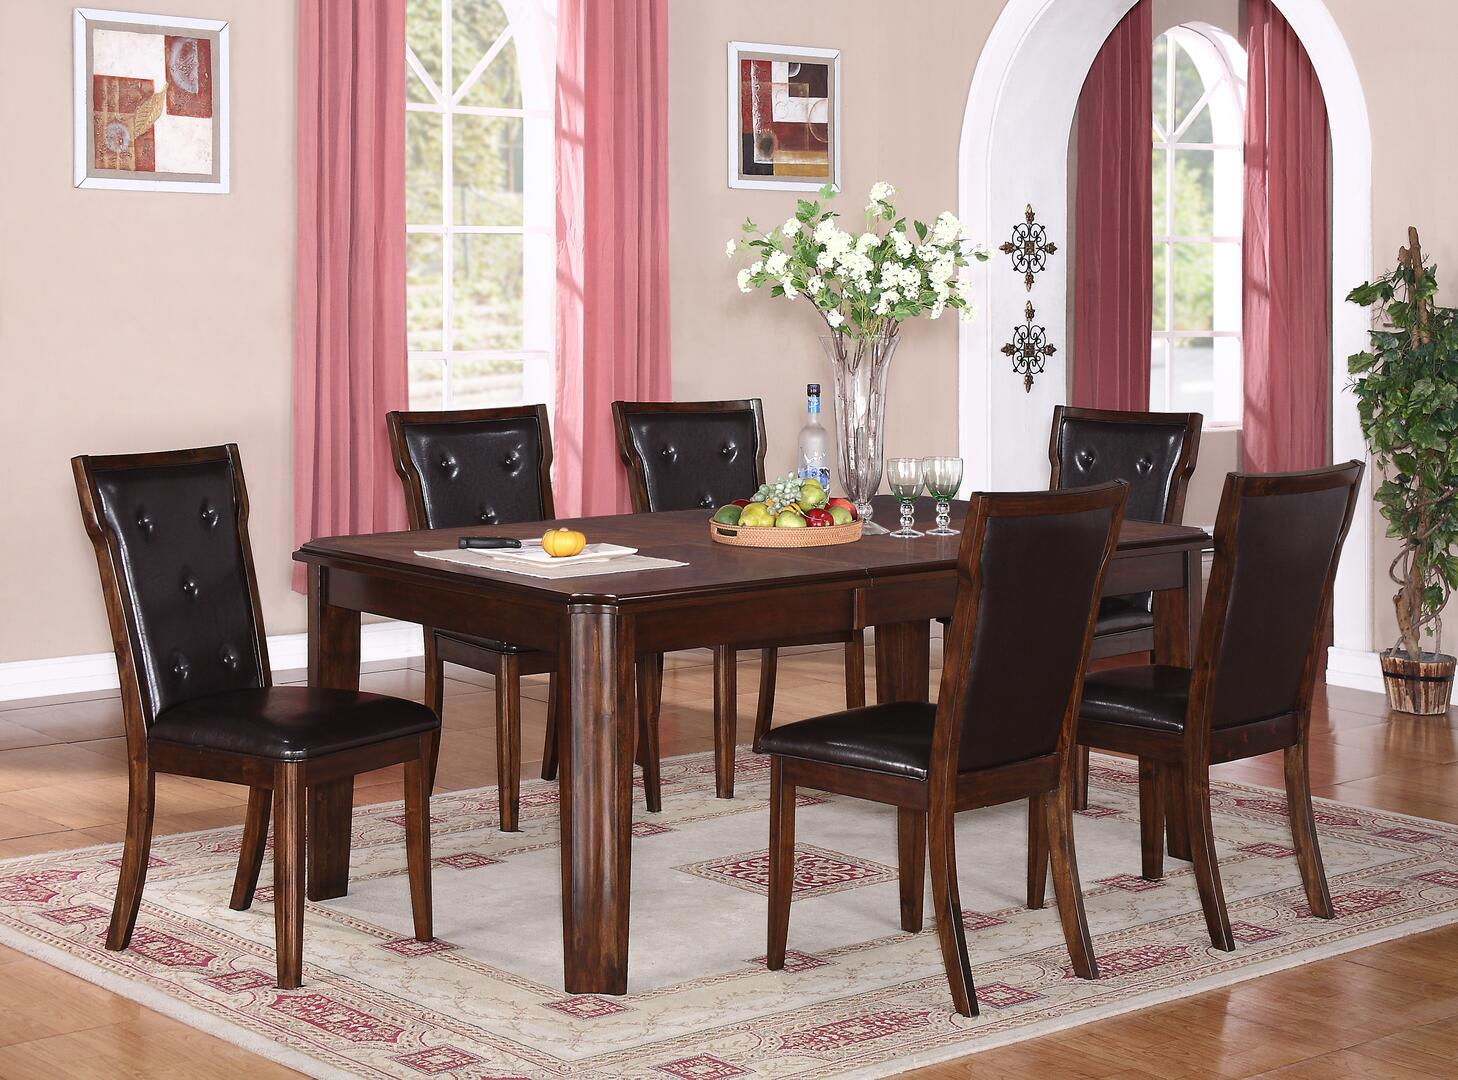 Transitional Espresso Faux Leather Dining Room Set 7 pcs Cosmos Furniture Pam-Set-7